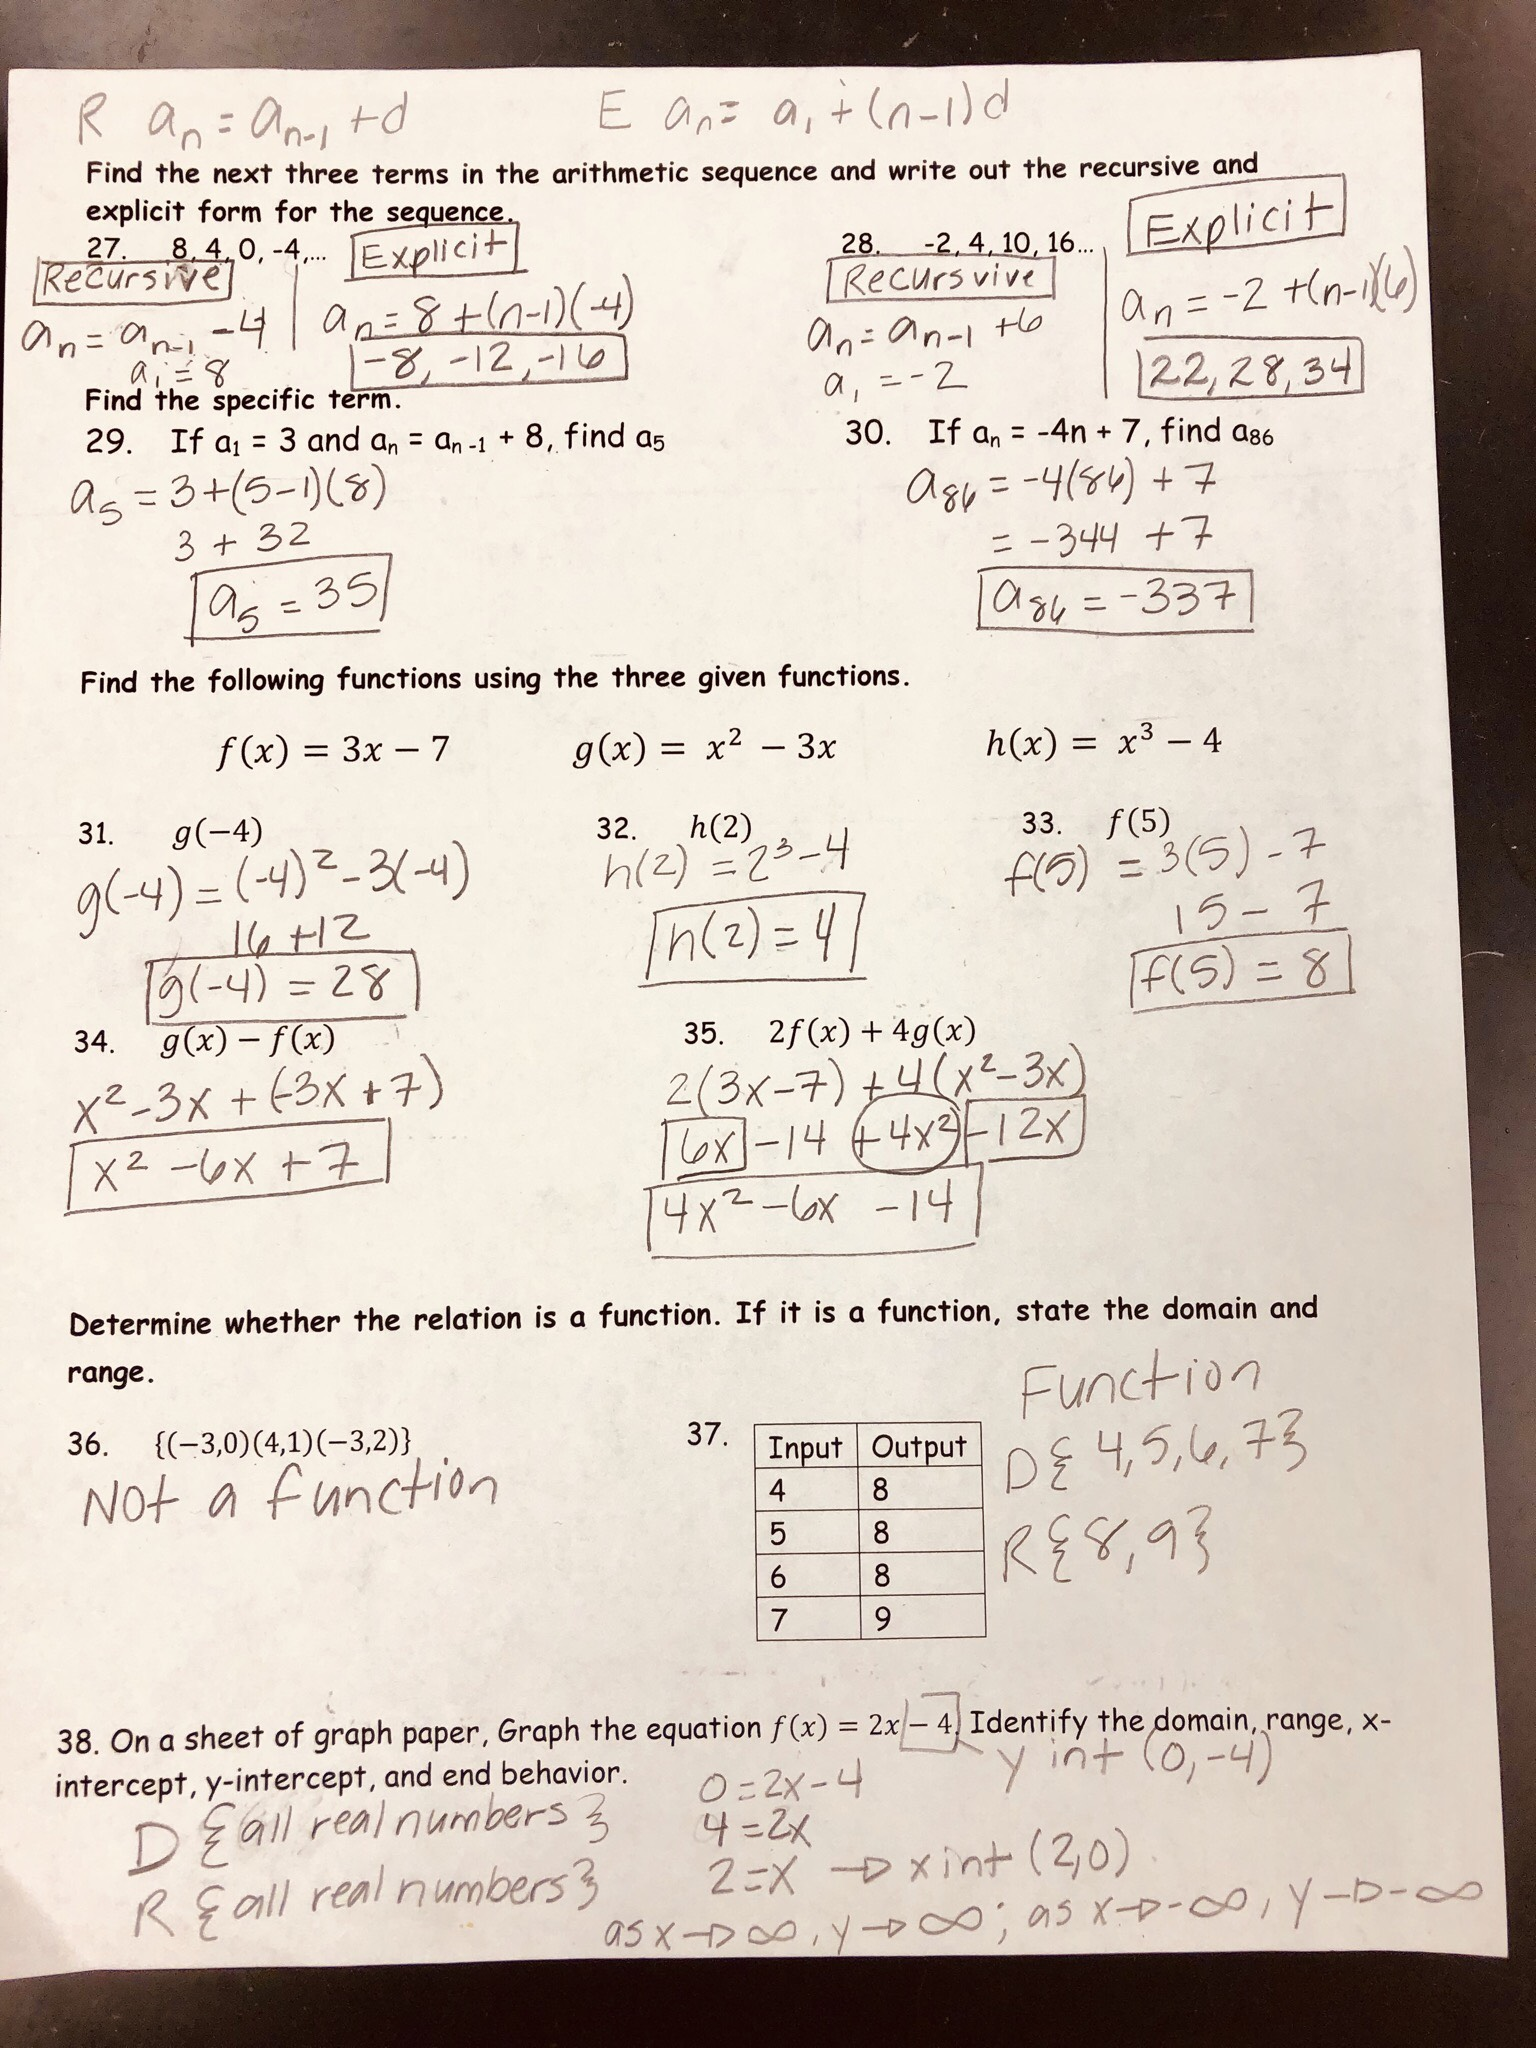 Unit 4 Test Study Guide Solving Quadratic Equations Gina